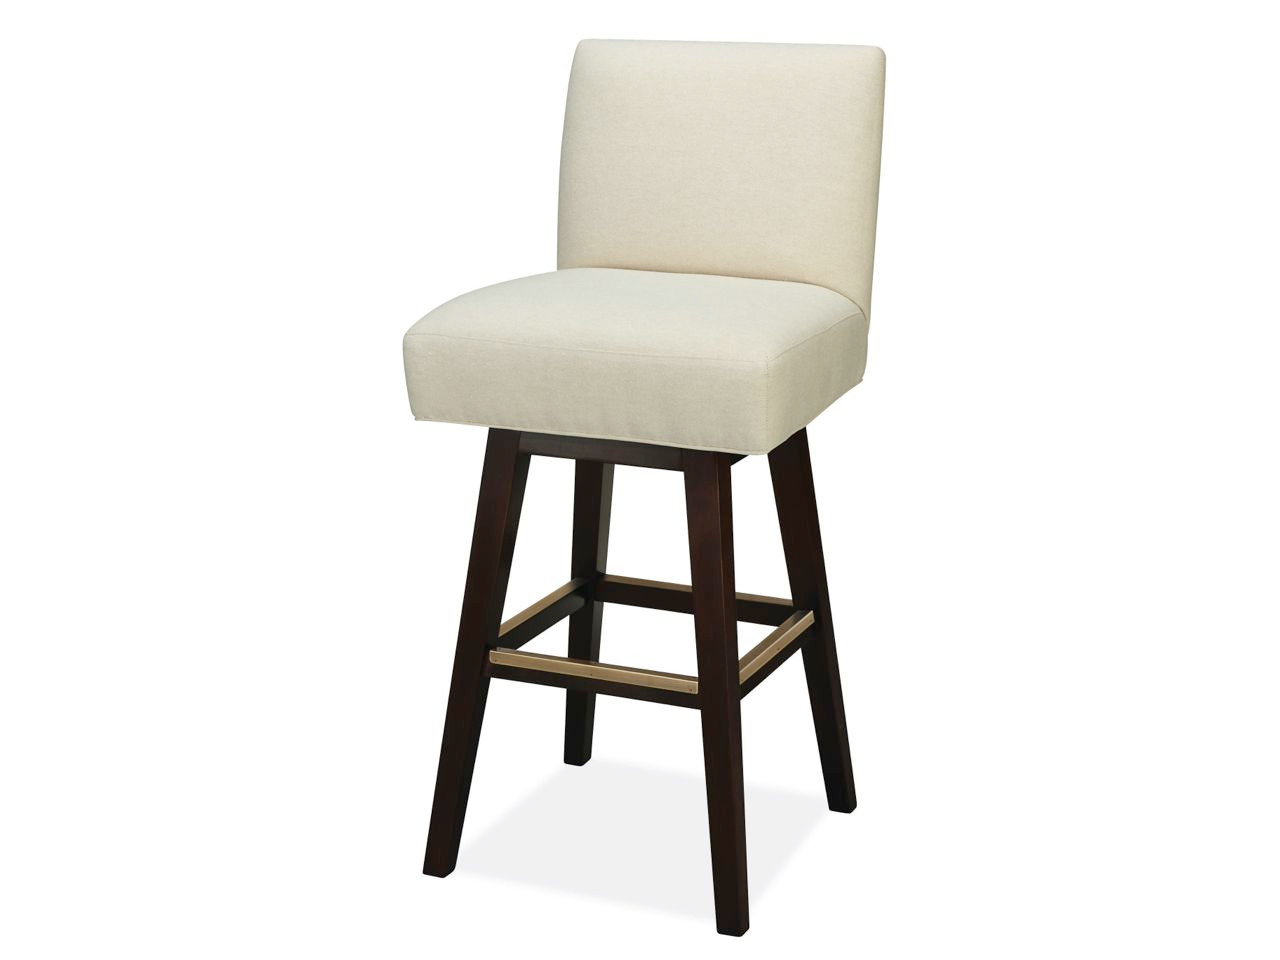 Astonishing Bolinas Swivel Bar Stool Dining Chairs Country Willow Lamtechconsult Wood Chair Design Ideas Lamtechconsultcom